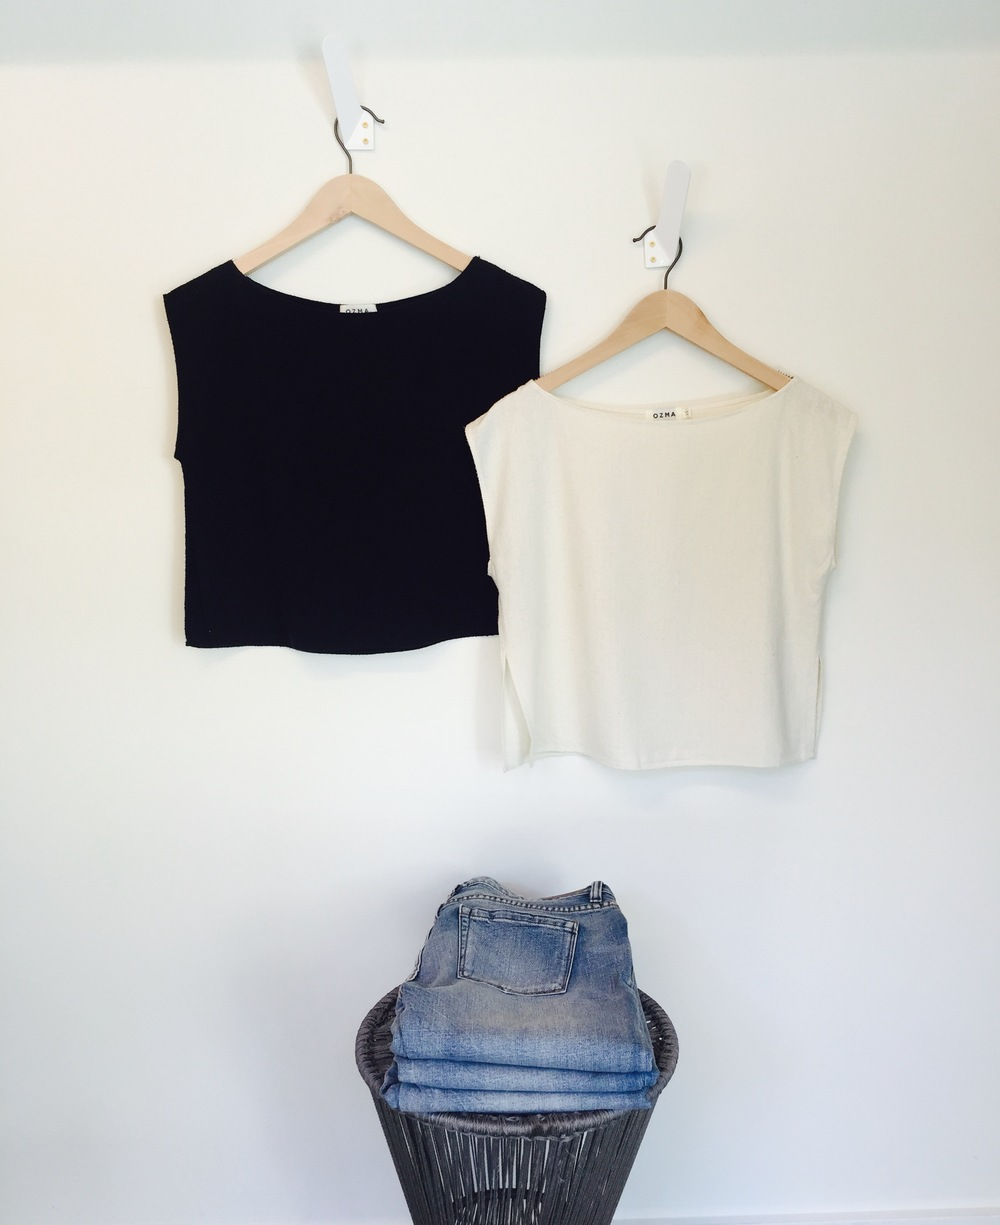 OZMA silk tops in natural and black